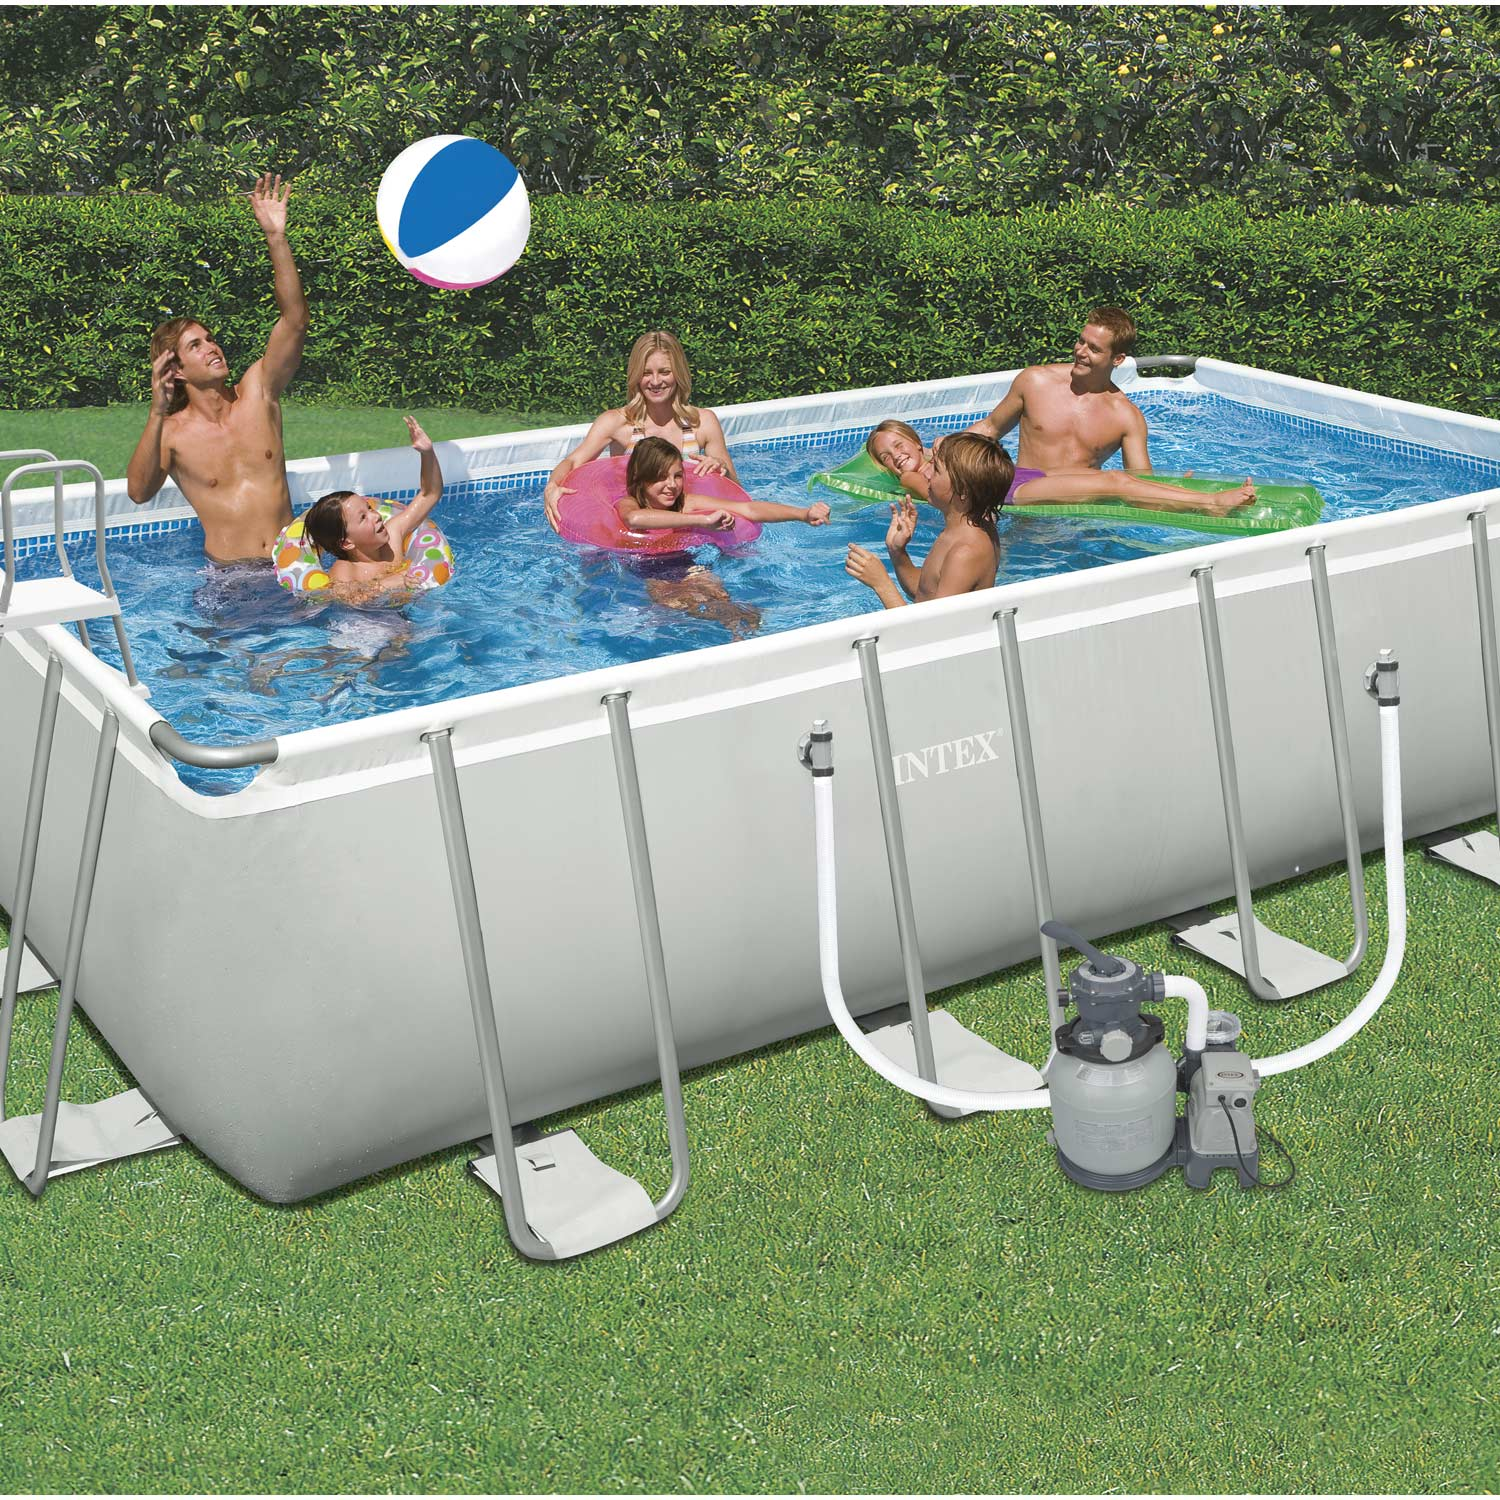 Piscine hors sol autoportante tubulaire intex l x l for Piscine hors sol intex